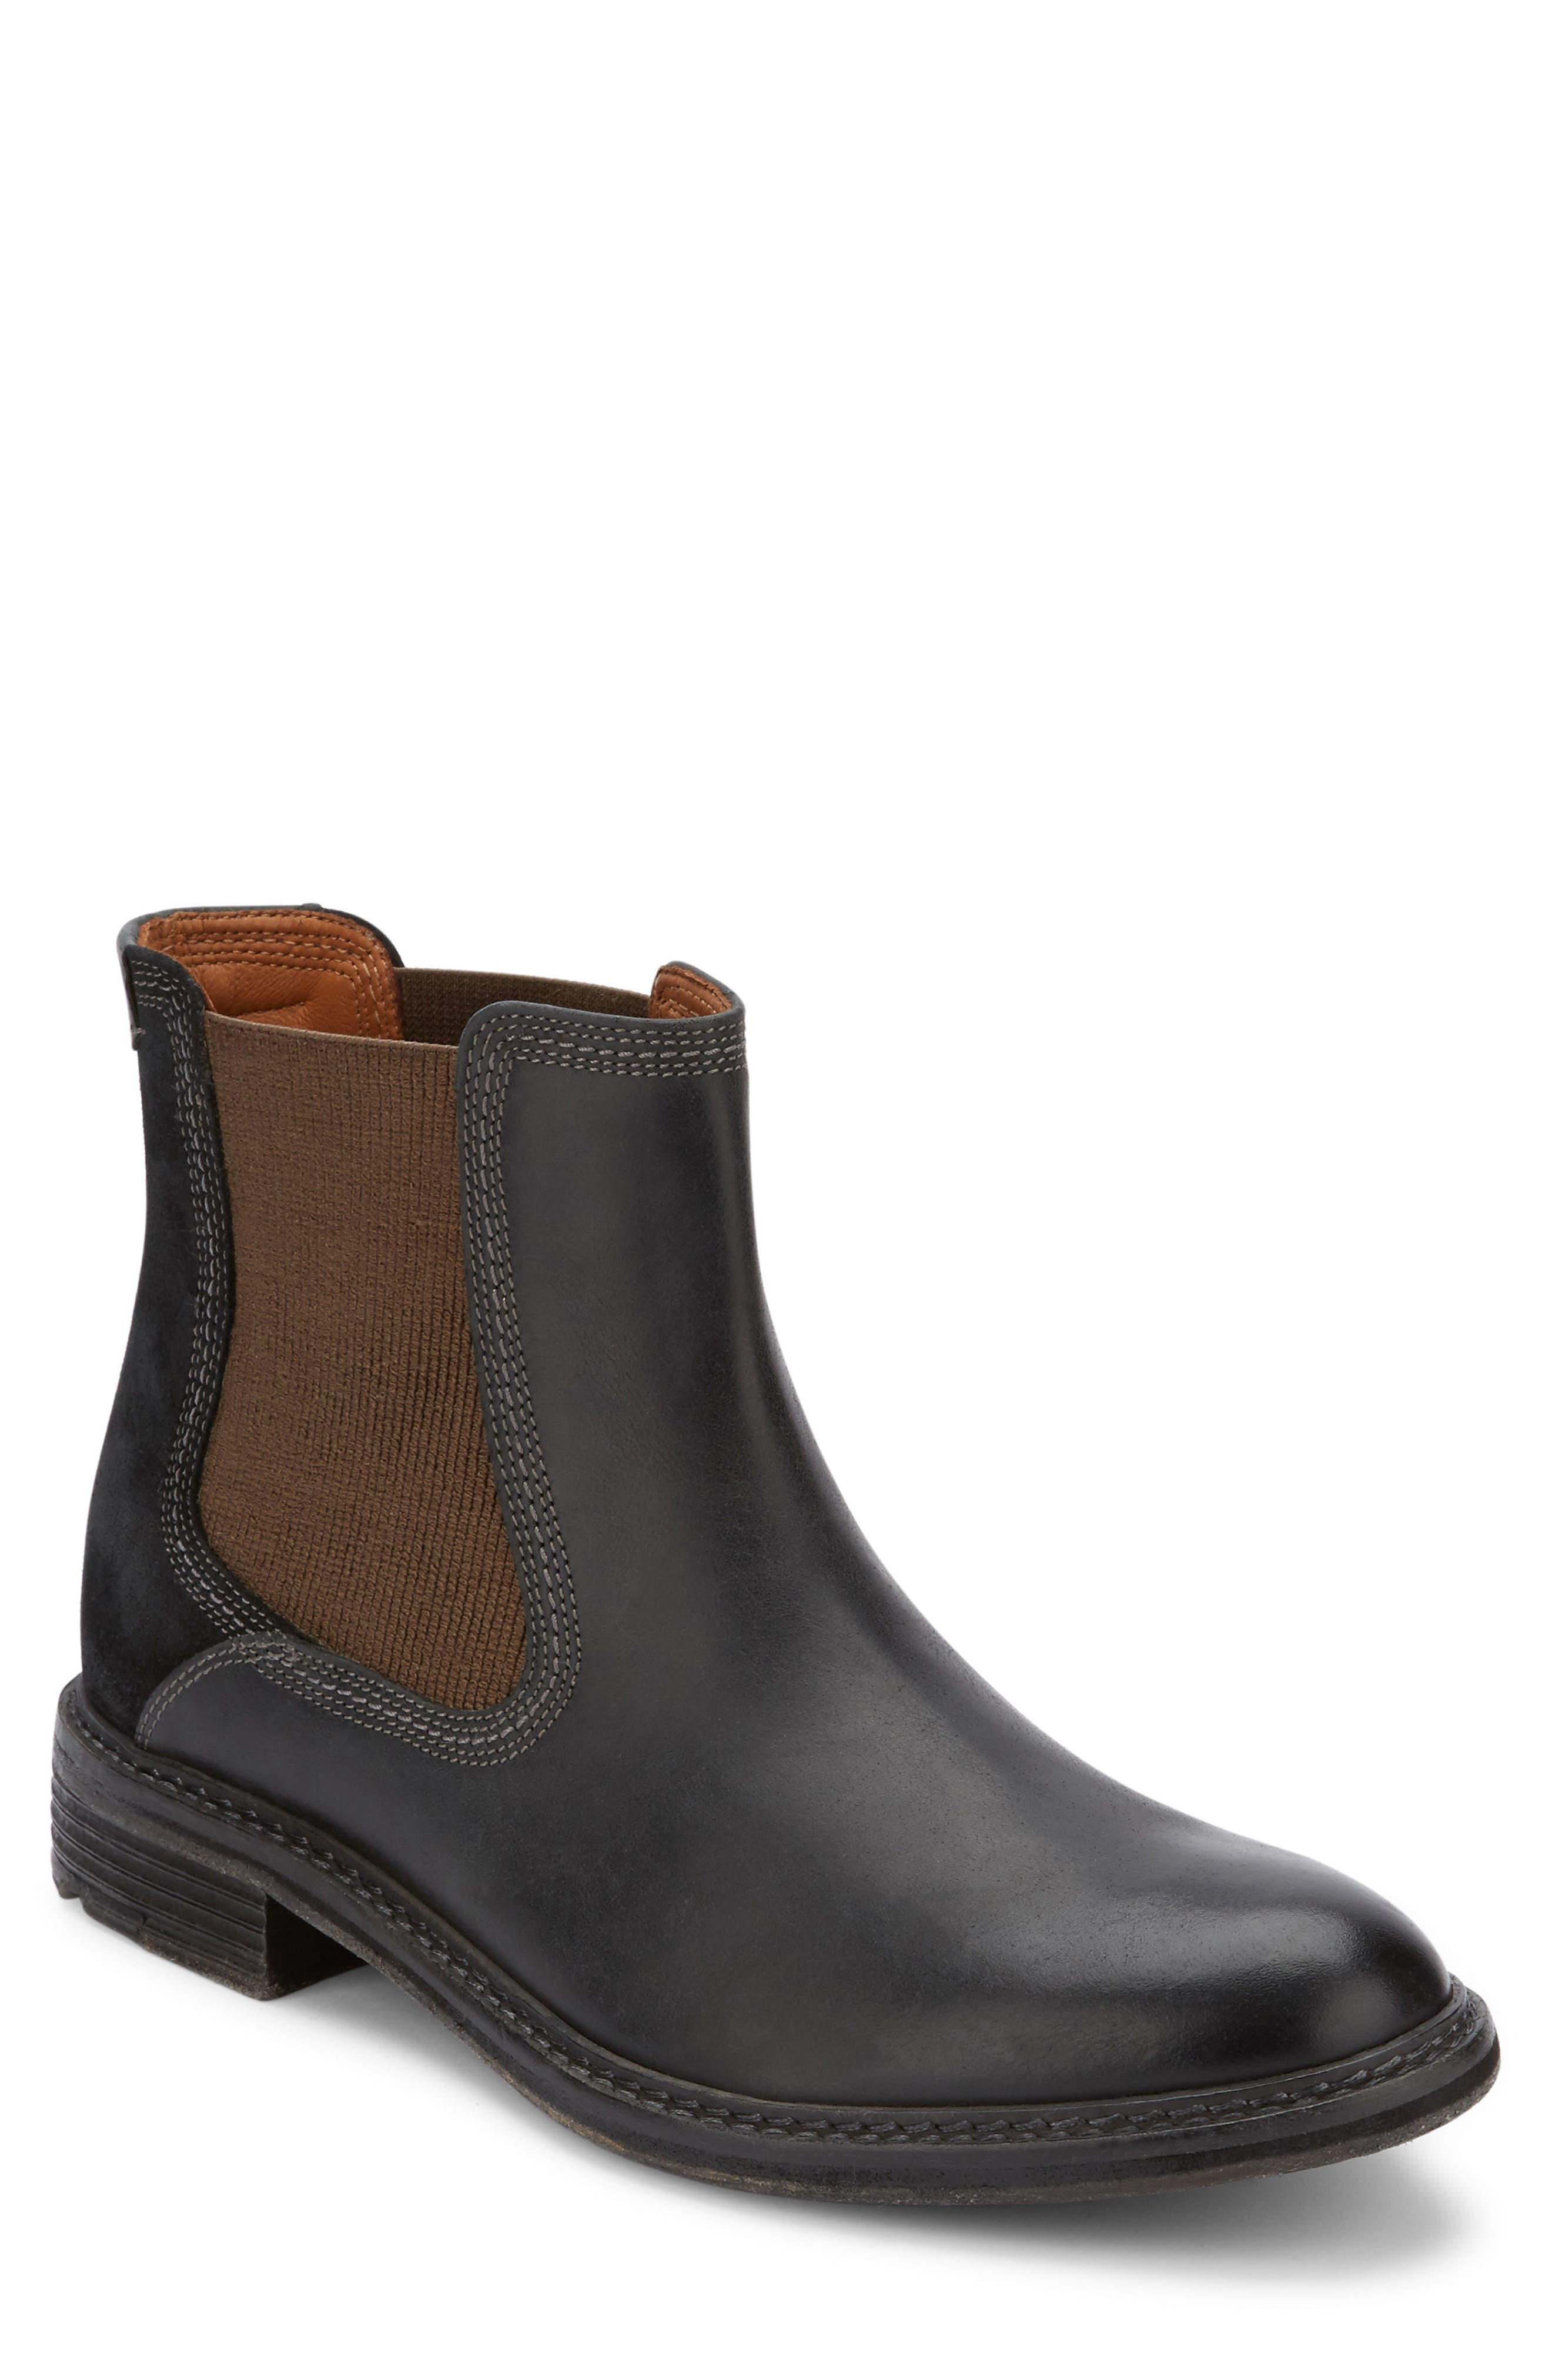 Hendrick Chelsea Boot,                         Main,                         color, Black